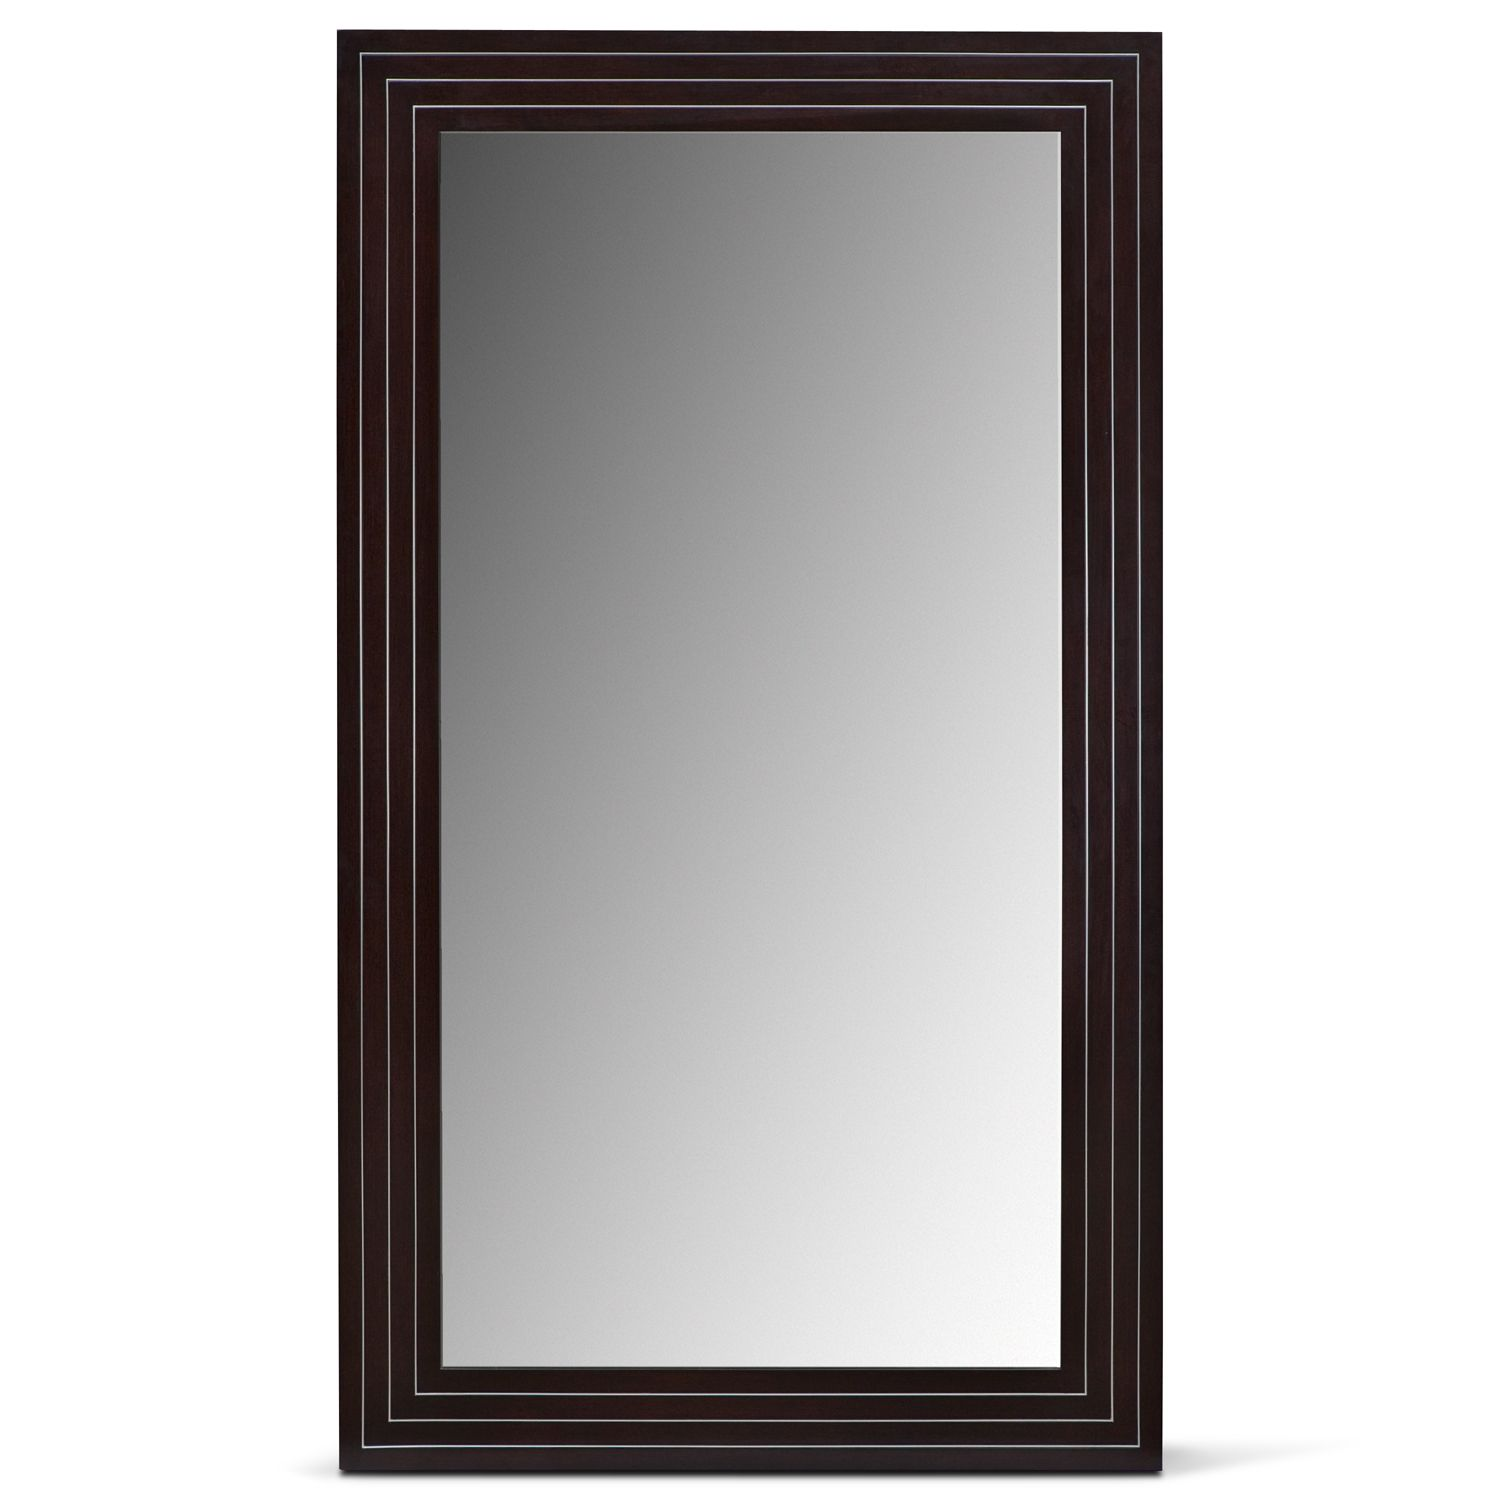 Wyatt Floor Mirror Black Contemporary Floor Mirror